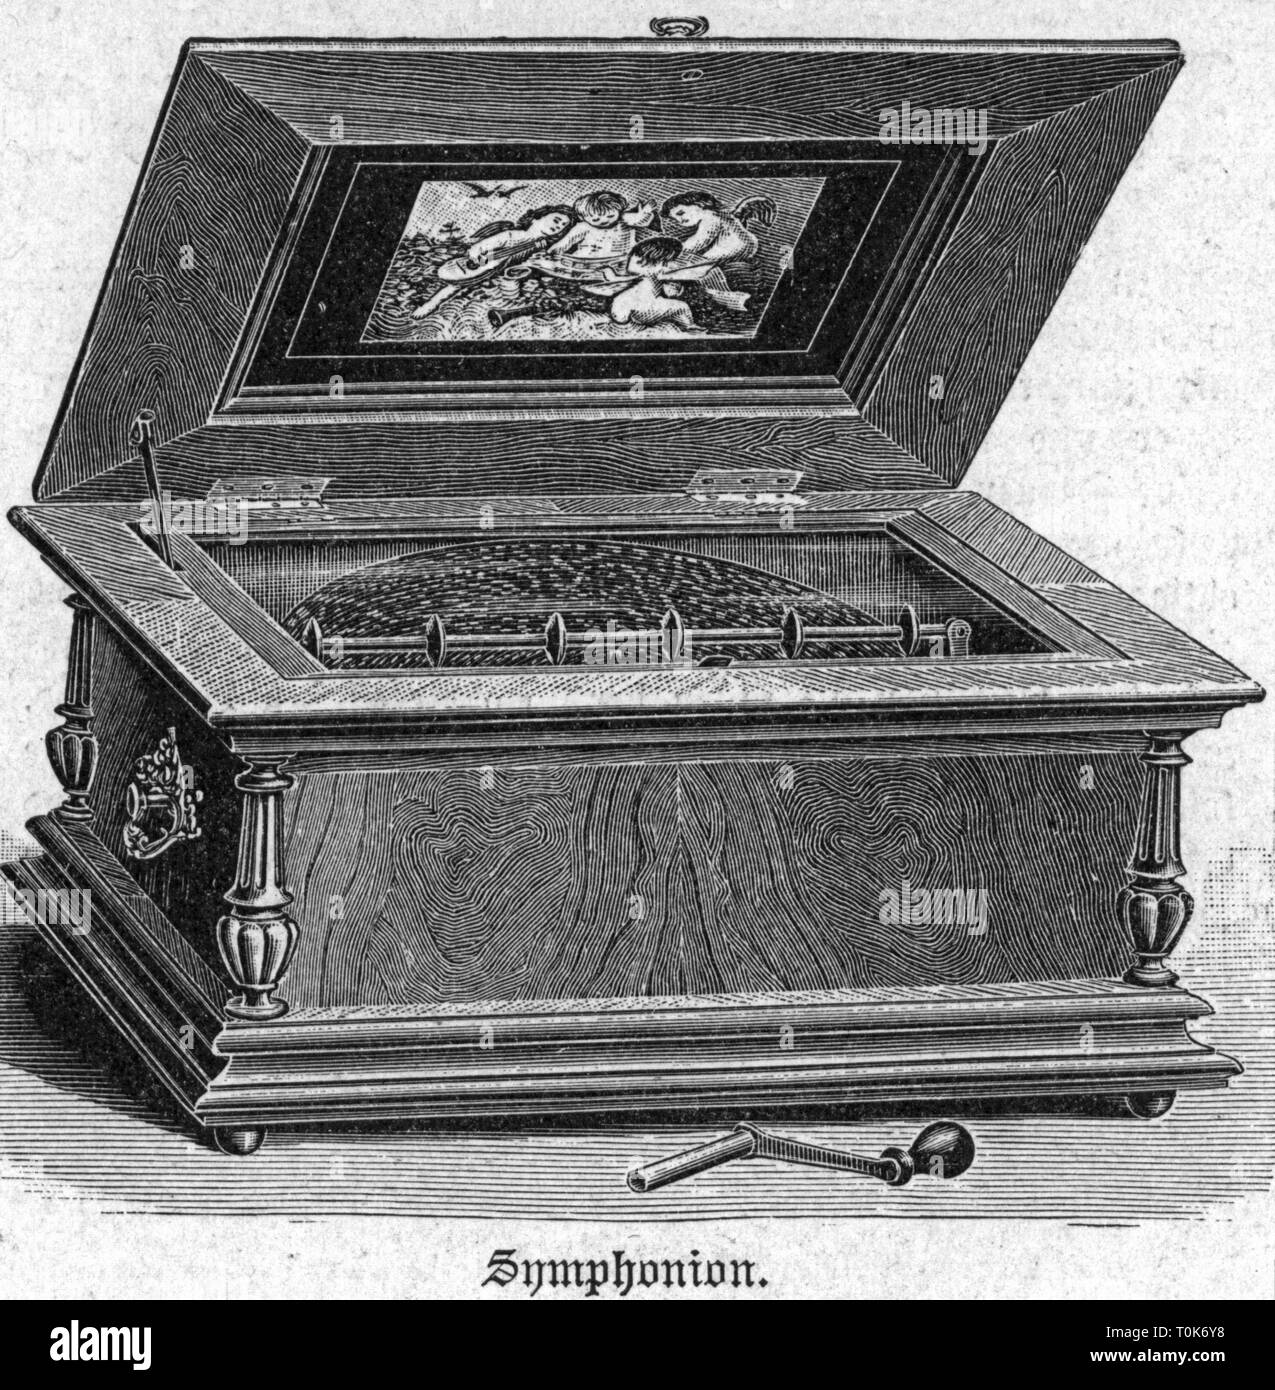 music, musical boxes, Symphonion, Lochmann'sche Musikwerke AG, Leipzig-Gohlis, wood engraving after drawing by Strassberger, 1892, Additional-Rights-Clearance-Info-Not-Available Stock Photo